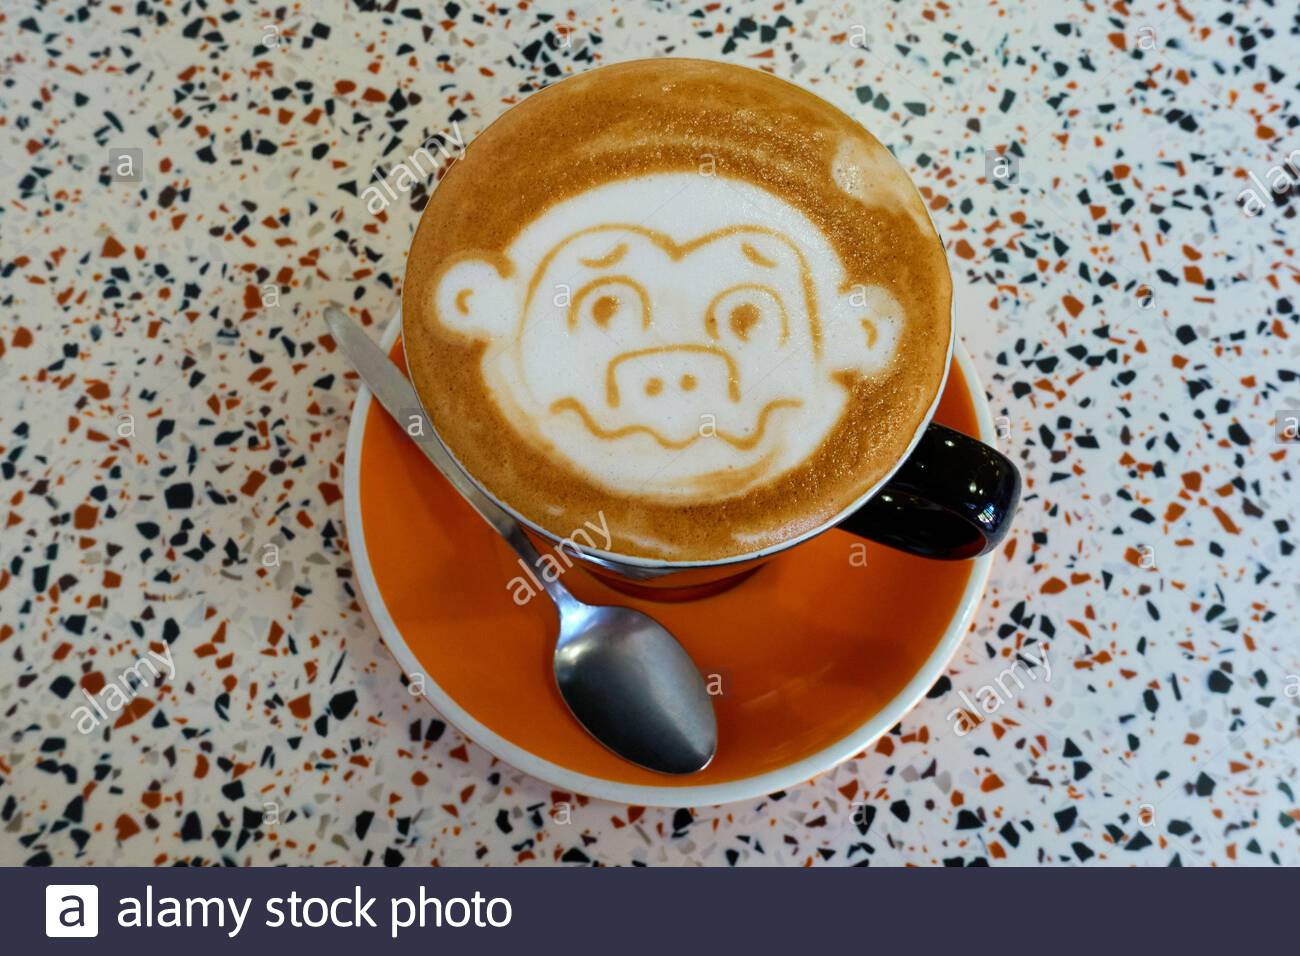 a-monkey-design-in-the-froth-on-top-of-a-flat-white-coffee-in-a-black-mug-on-an-orange-saucer-with-a-teaspoon-on-a-table-with-black-and-orange-flecks-2E6ET0C.jpg